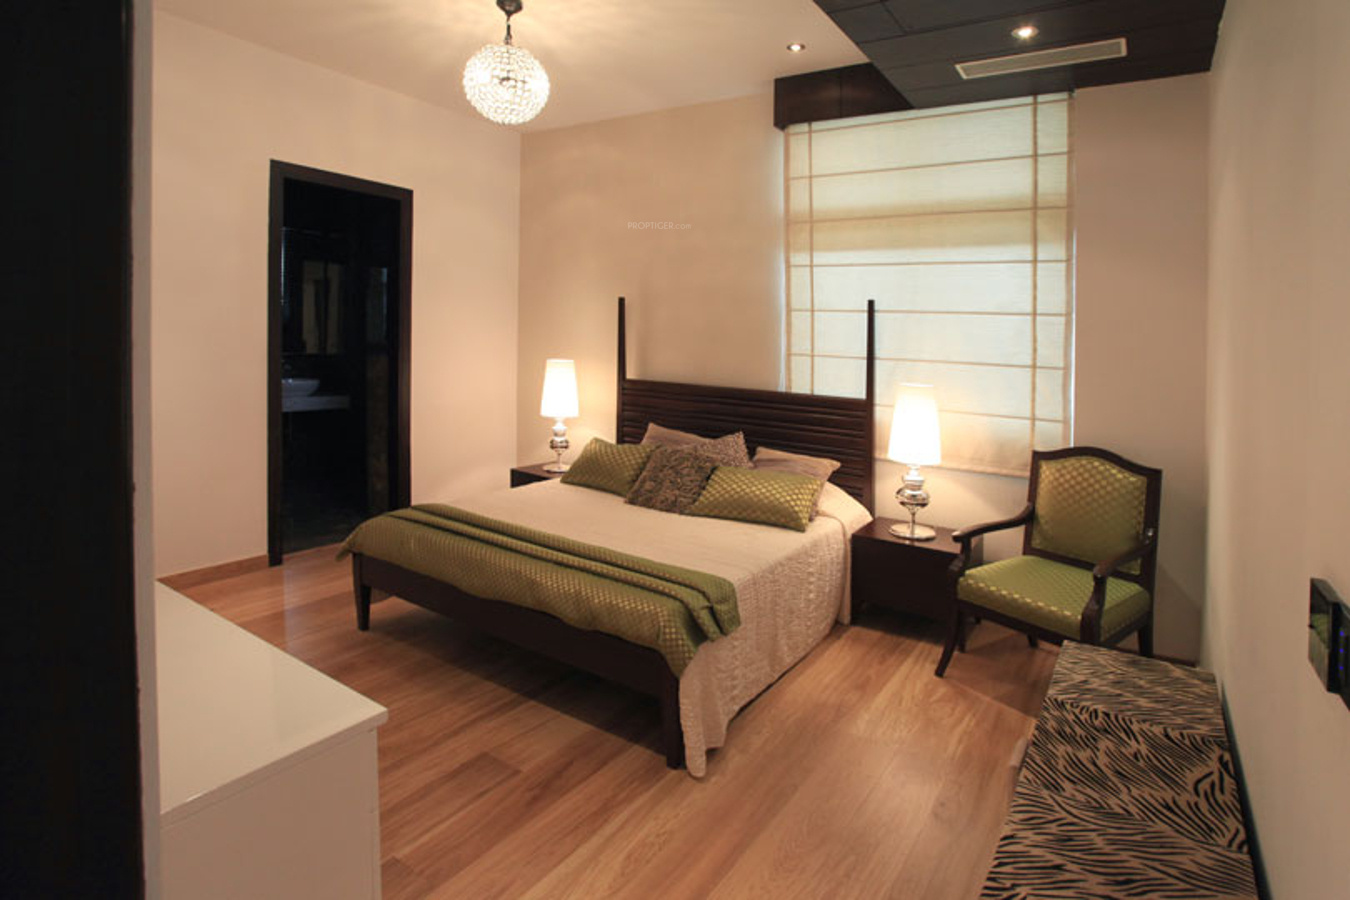 Supertech Ritz Chateaux In Sector 74 Noida Price